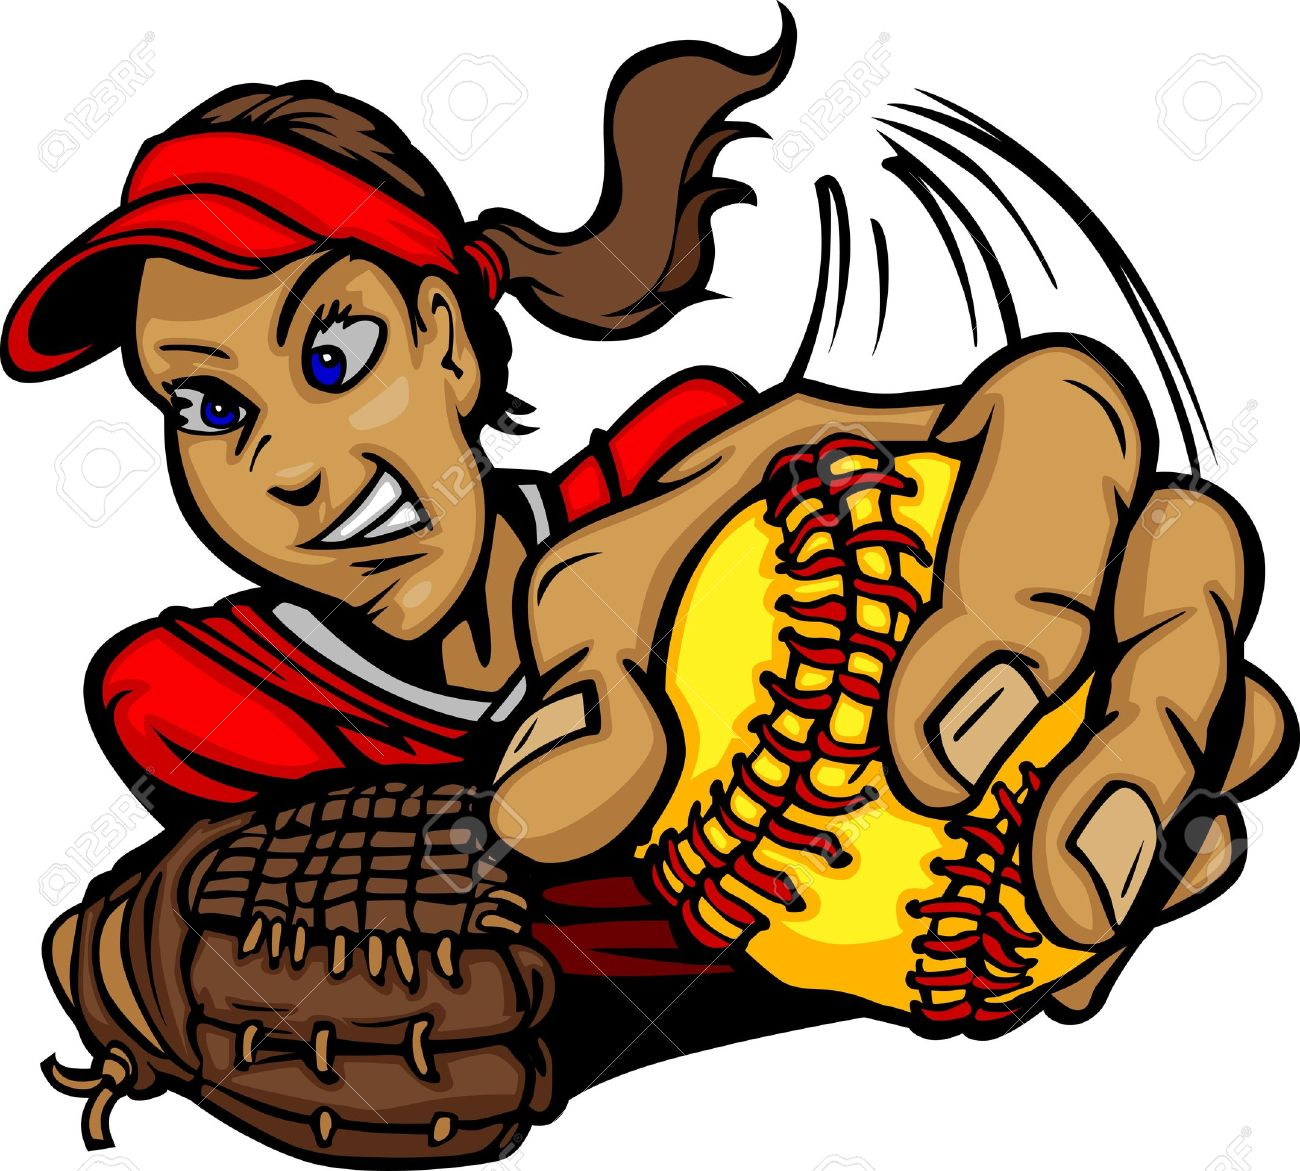 Free Softball Cliparts Silhouette, Download Free Clip Art, Free Clip Art on  Clipart Library